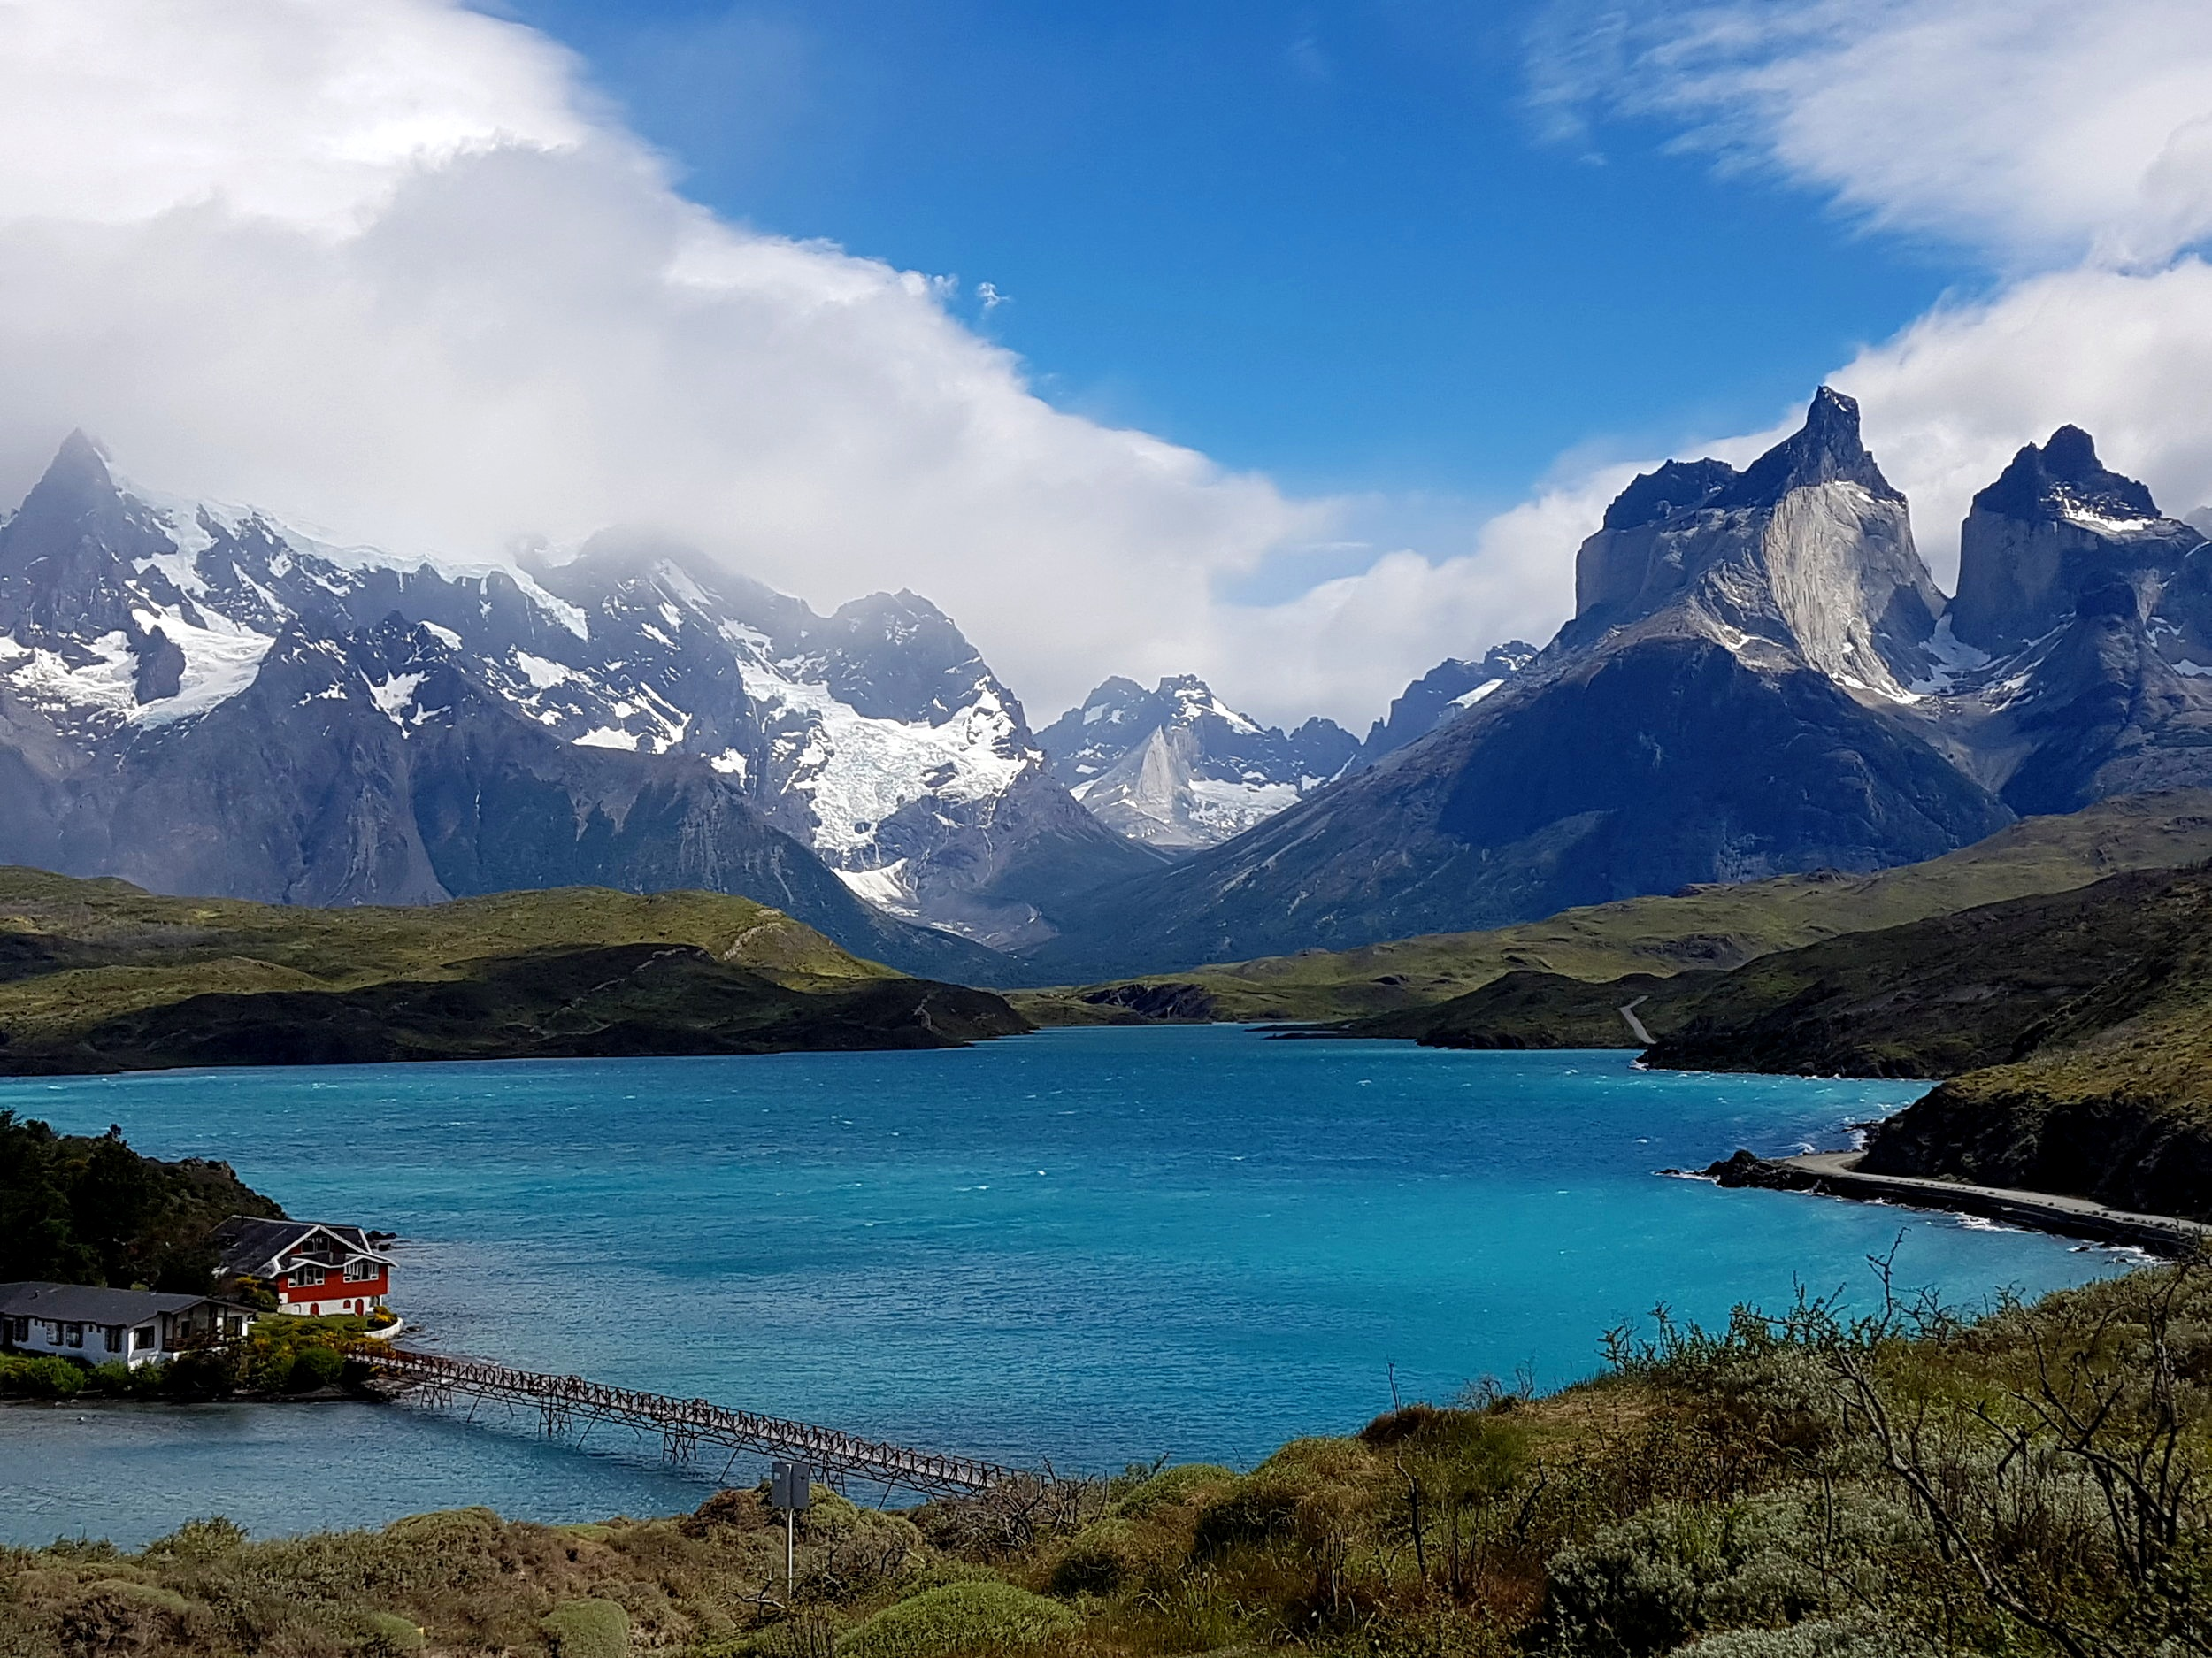 Patagonia. A beautiful part of Chile, not just a clothing brand for insufferable, coffee loving, vegetarian, millennials in London, like me.